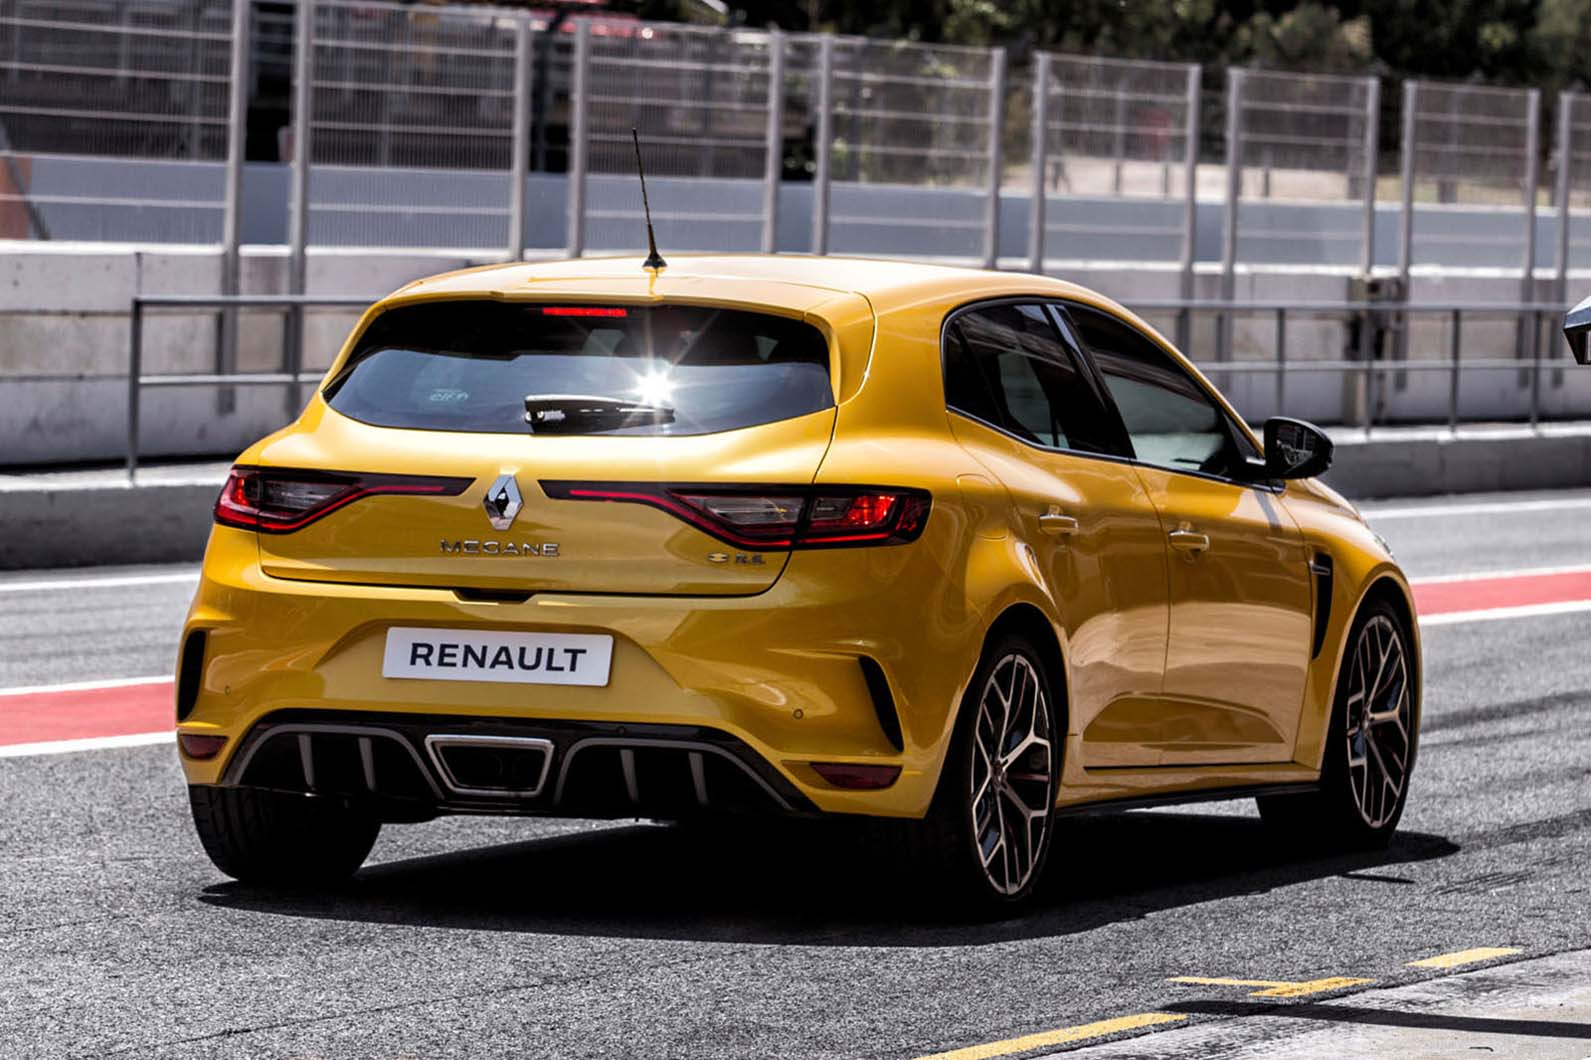 renault megane rs trophy prices and specs announced for 296bhp hot hatch autocar. Black Bedroom Furniture Sets. Home Design Ideas